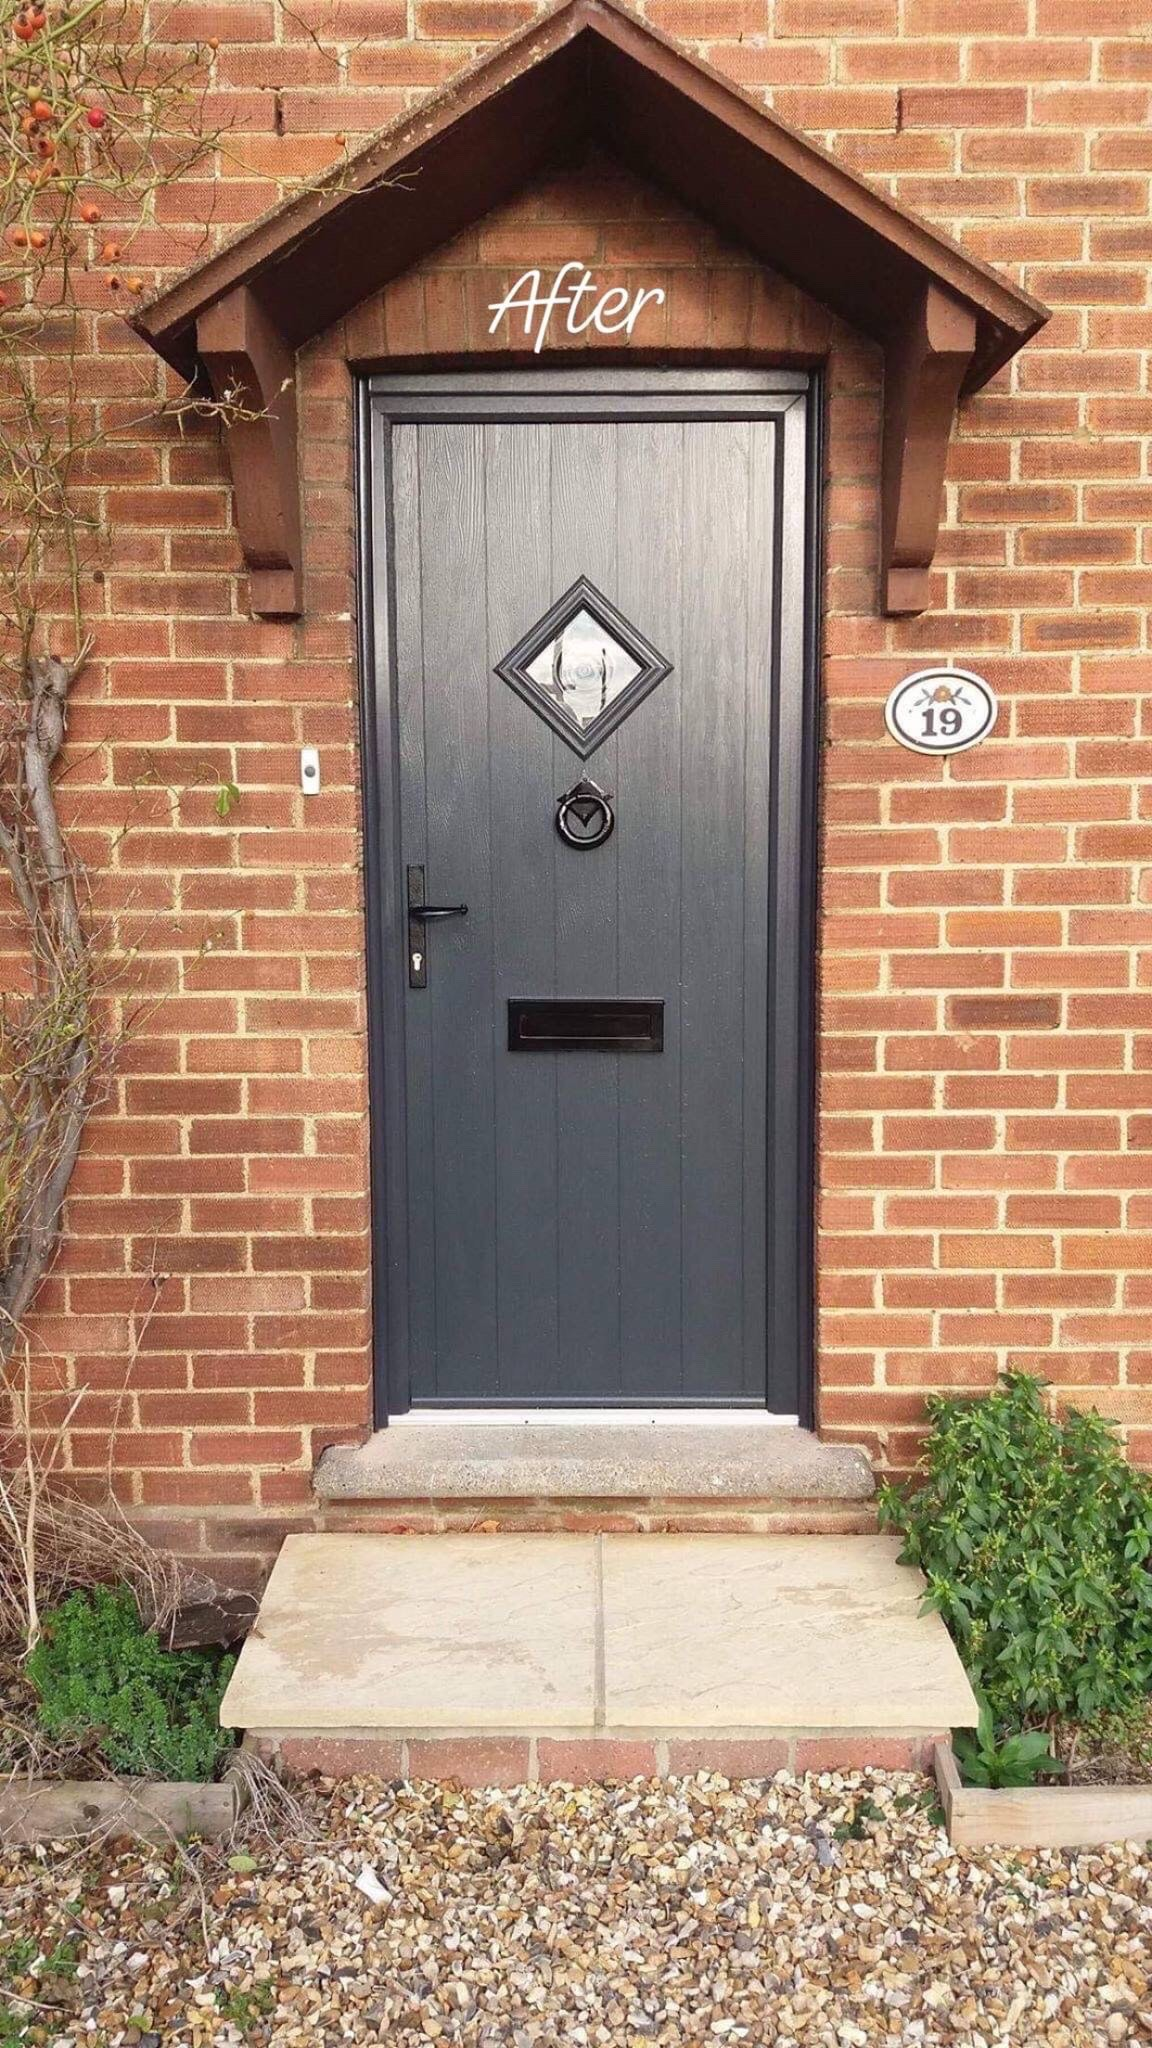 New door installed in Orchard Portman